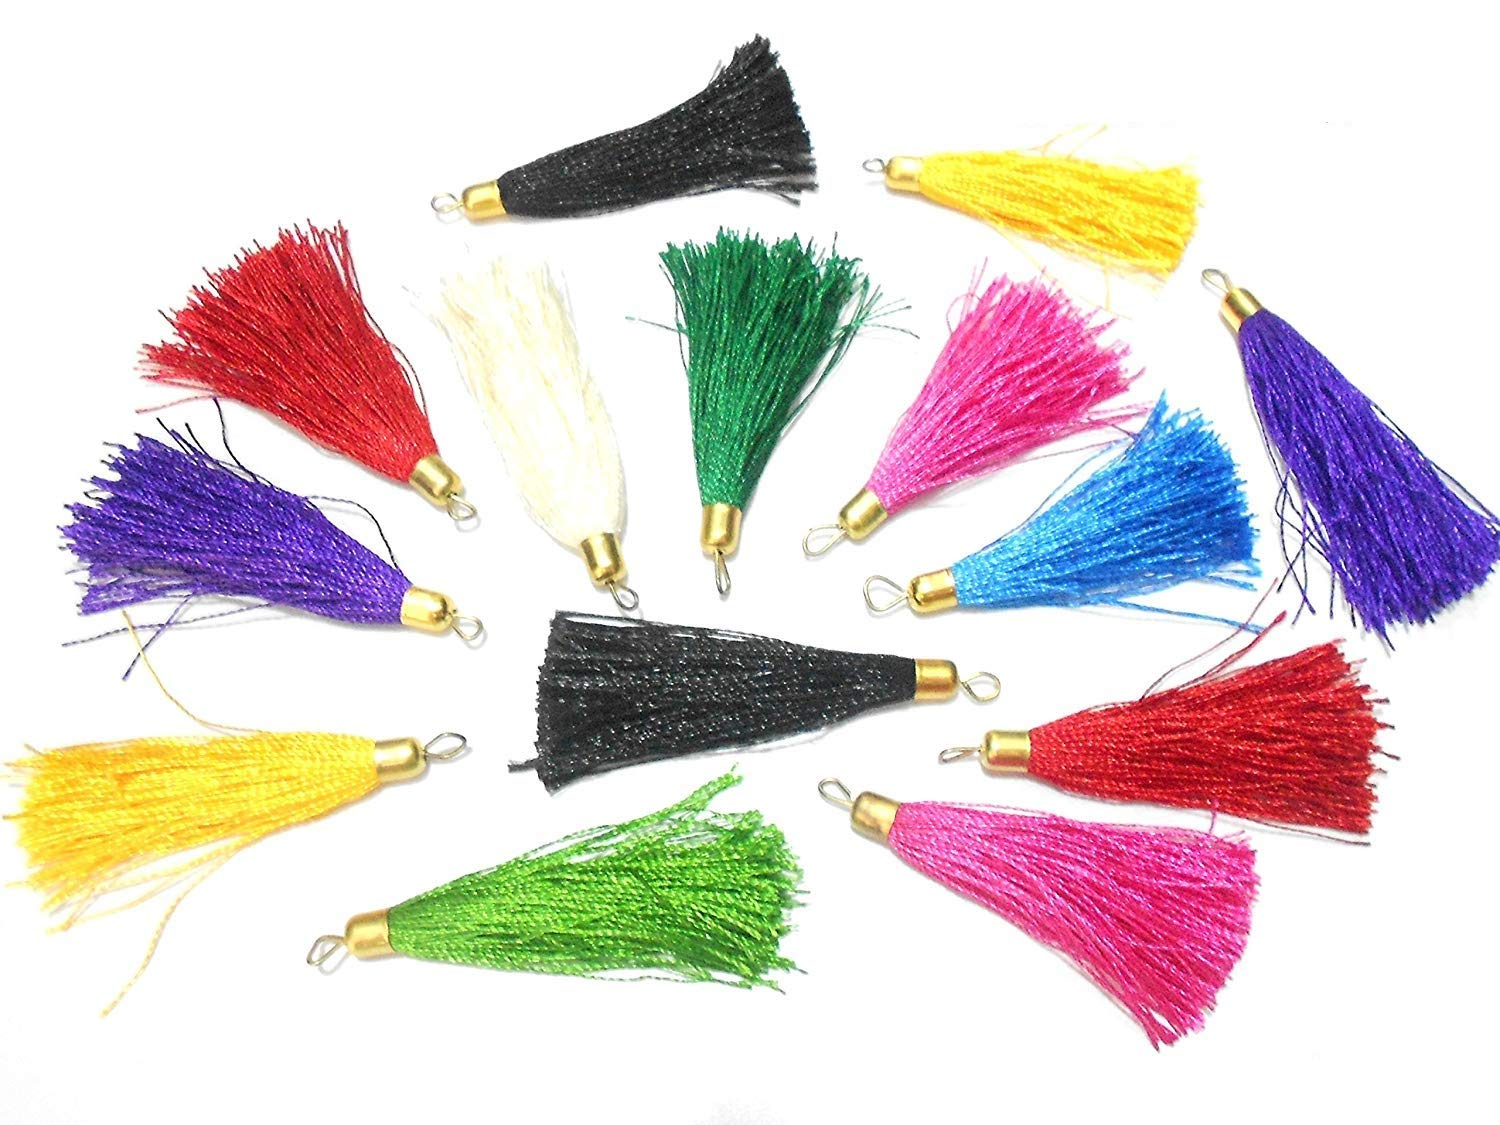 Keychain Bags 100 Pcs Thread Tassels Bunch for DIY Crafts Jewelry in Multicolor